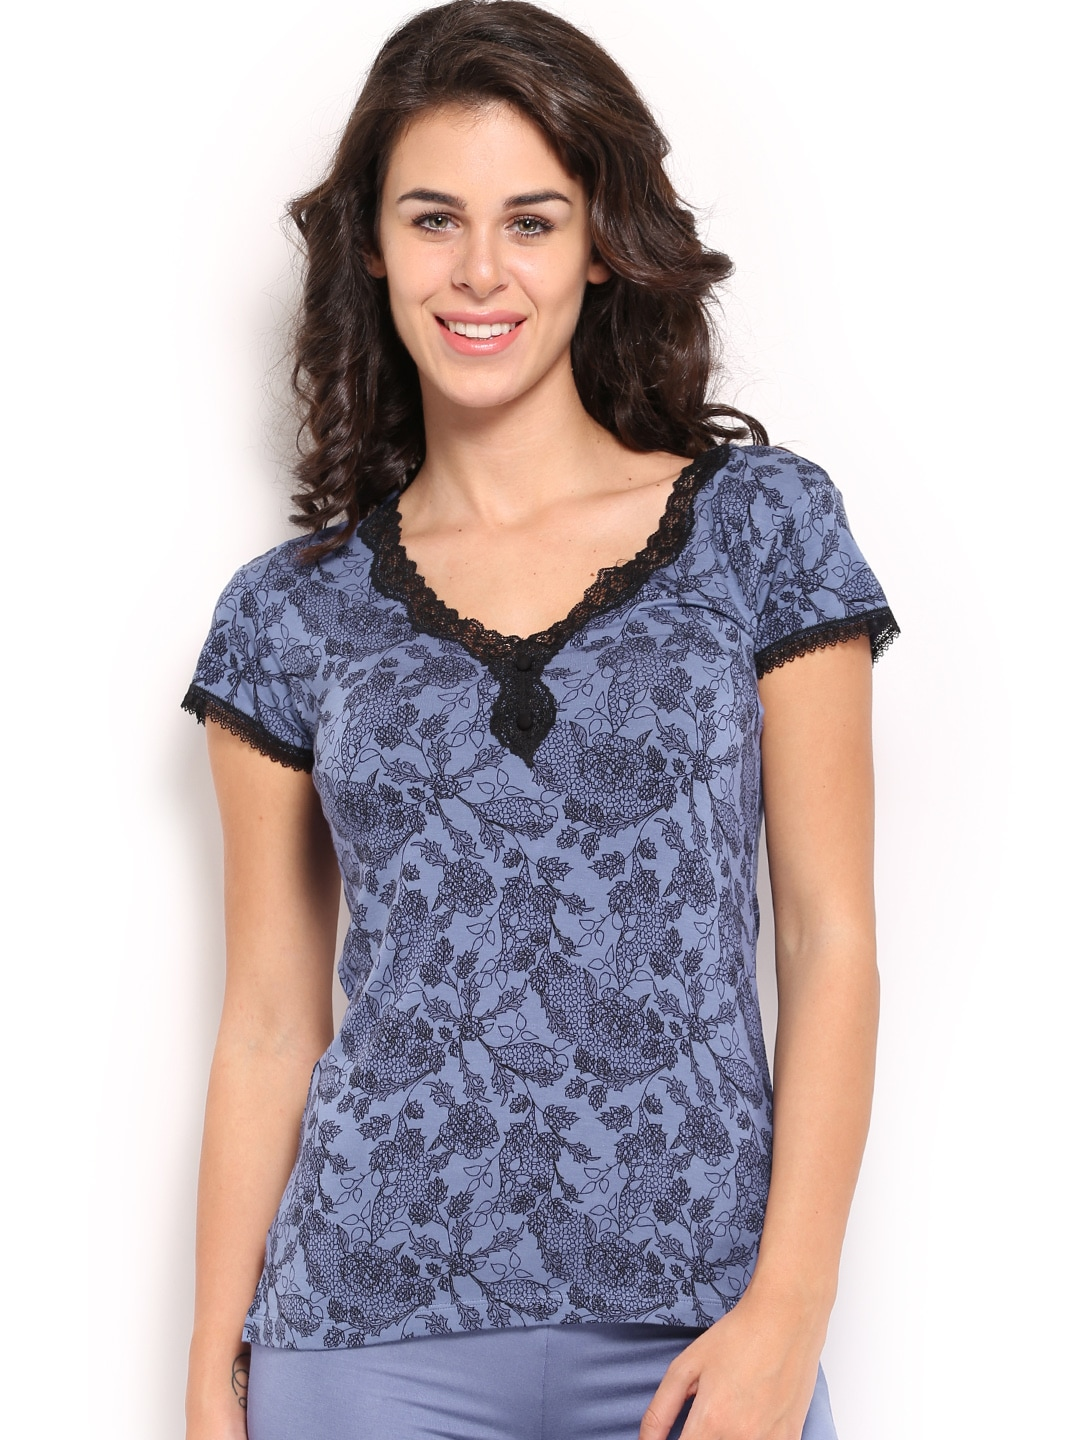 Amante Women Blue Printed Lounge Top SGLC01 image